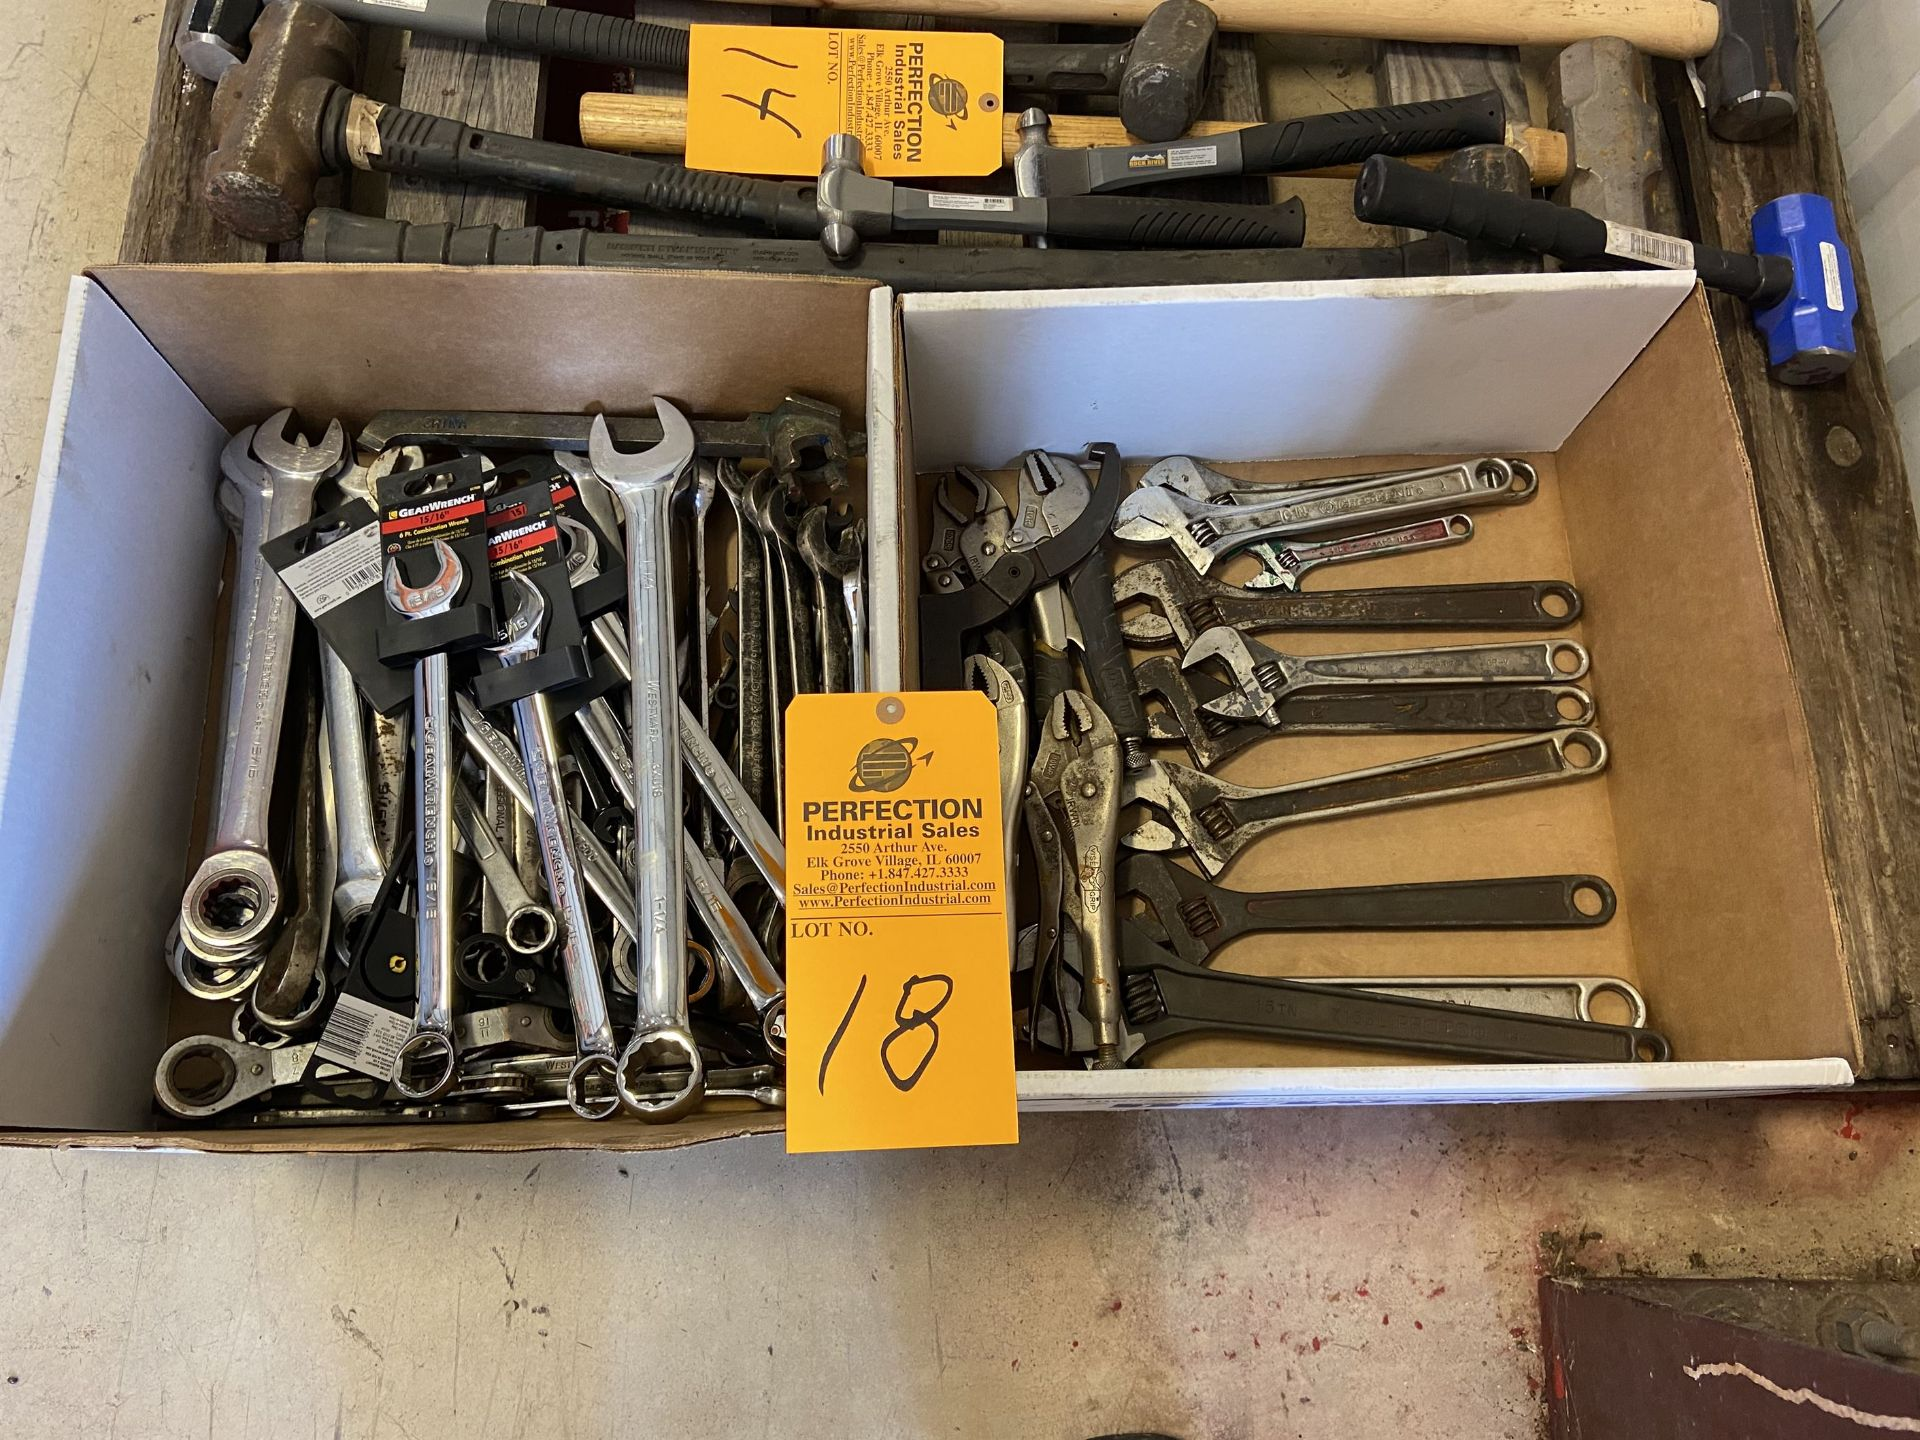 Lot of (2) Boxes of Wrenches, Vise Grips and Adjustable Wrenches